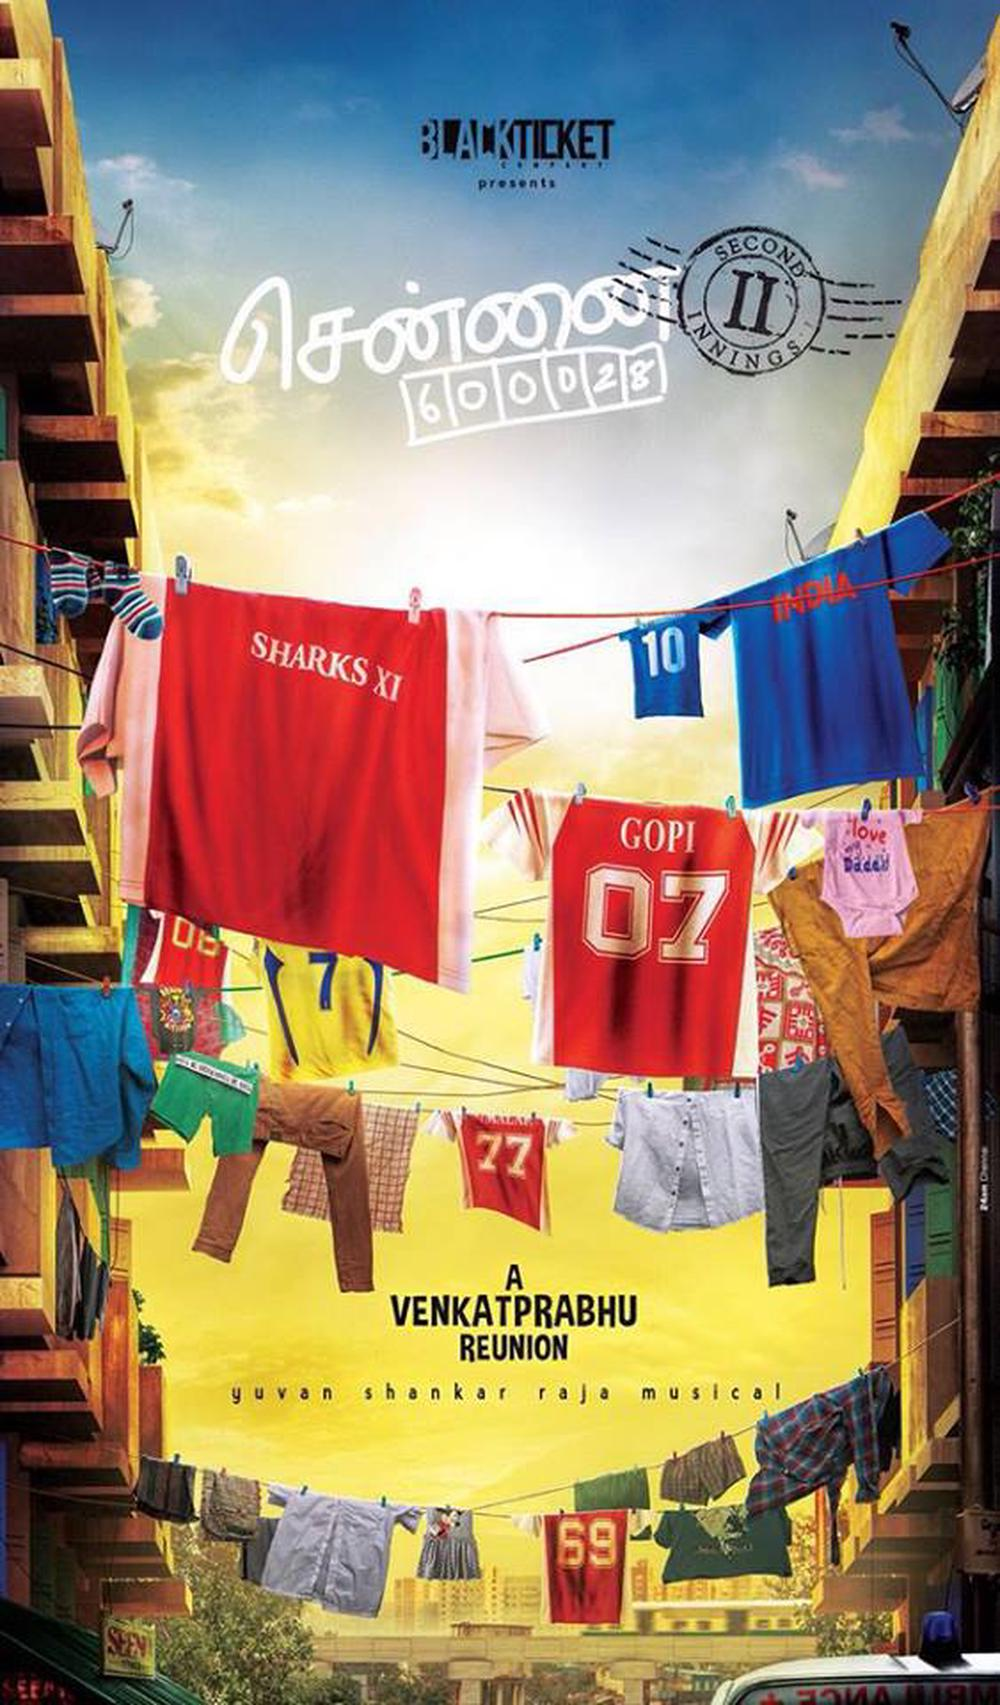 Movie Chennai 600028 II Innings